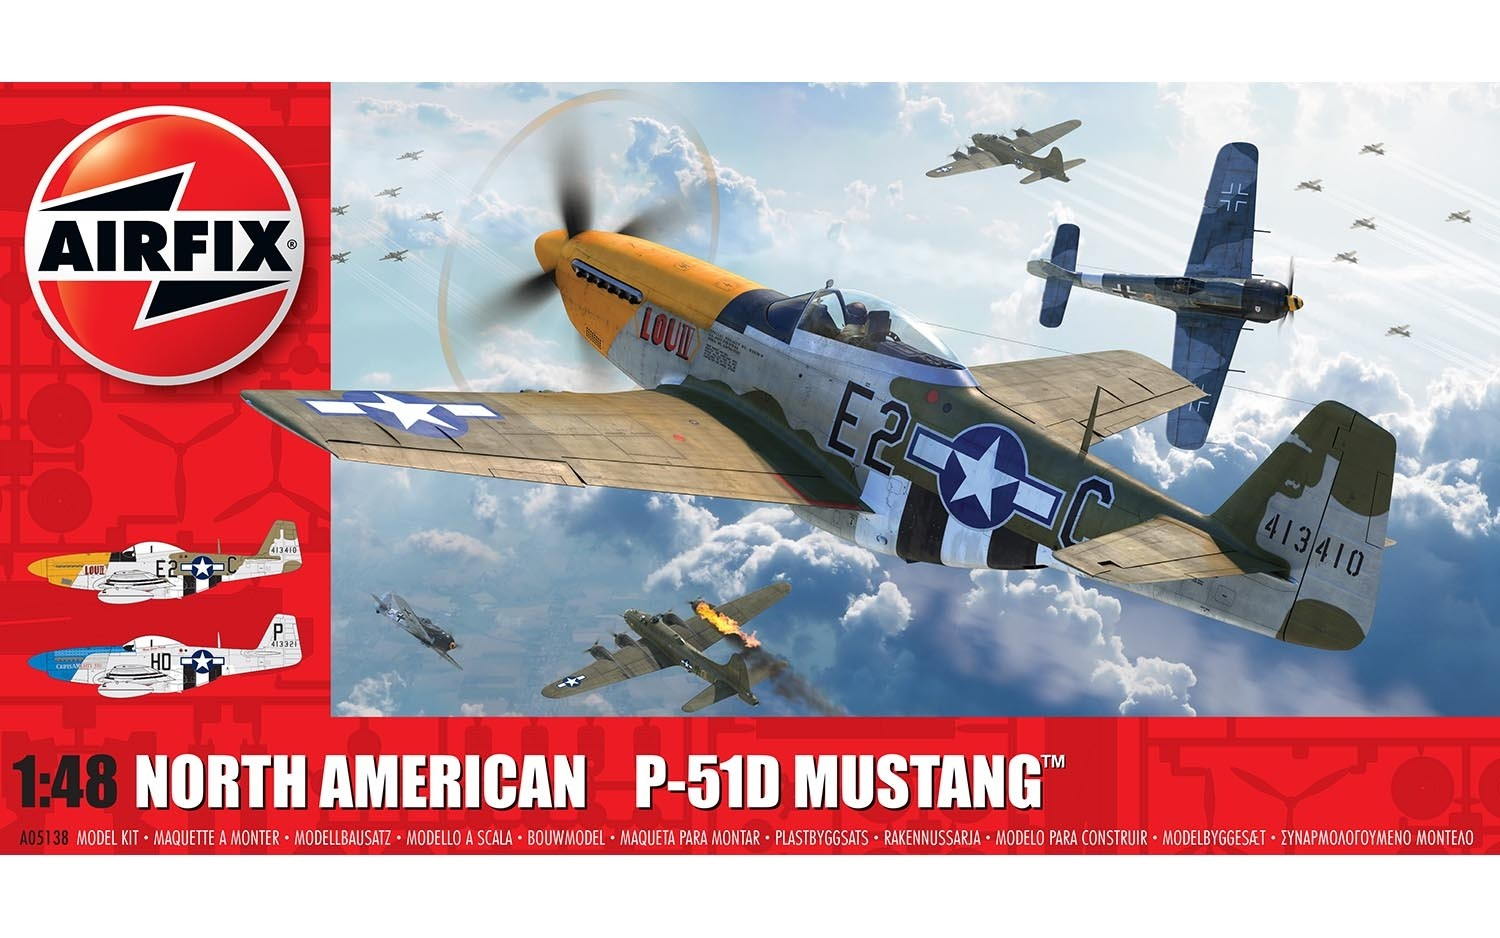 North American P-51D Mustang (Filletless Tails)